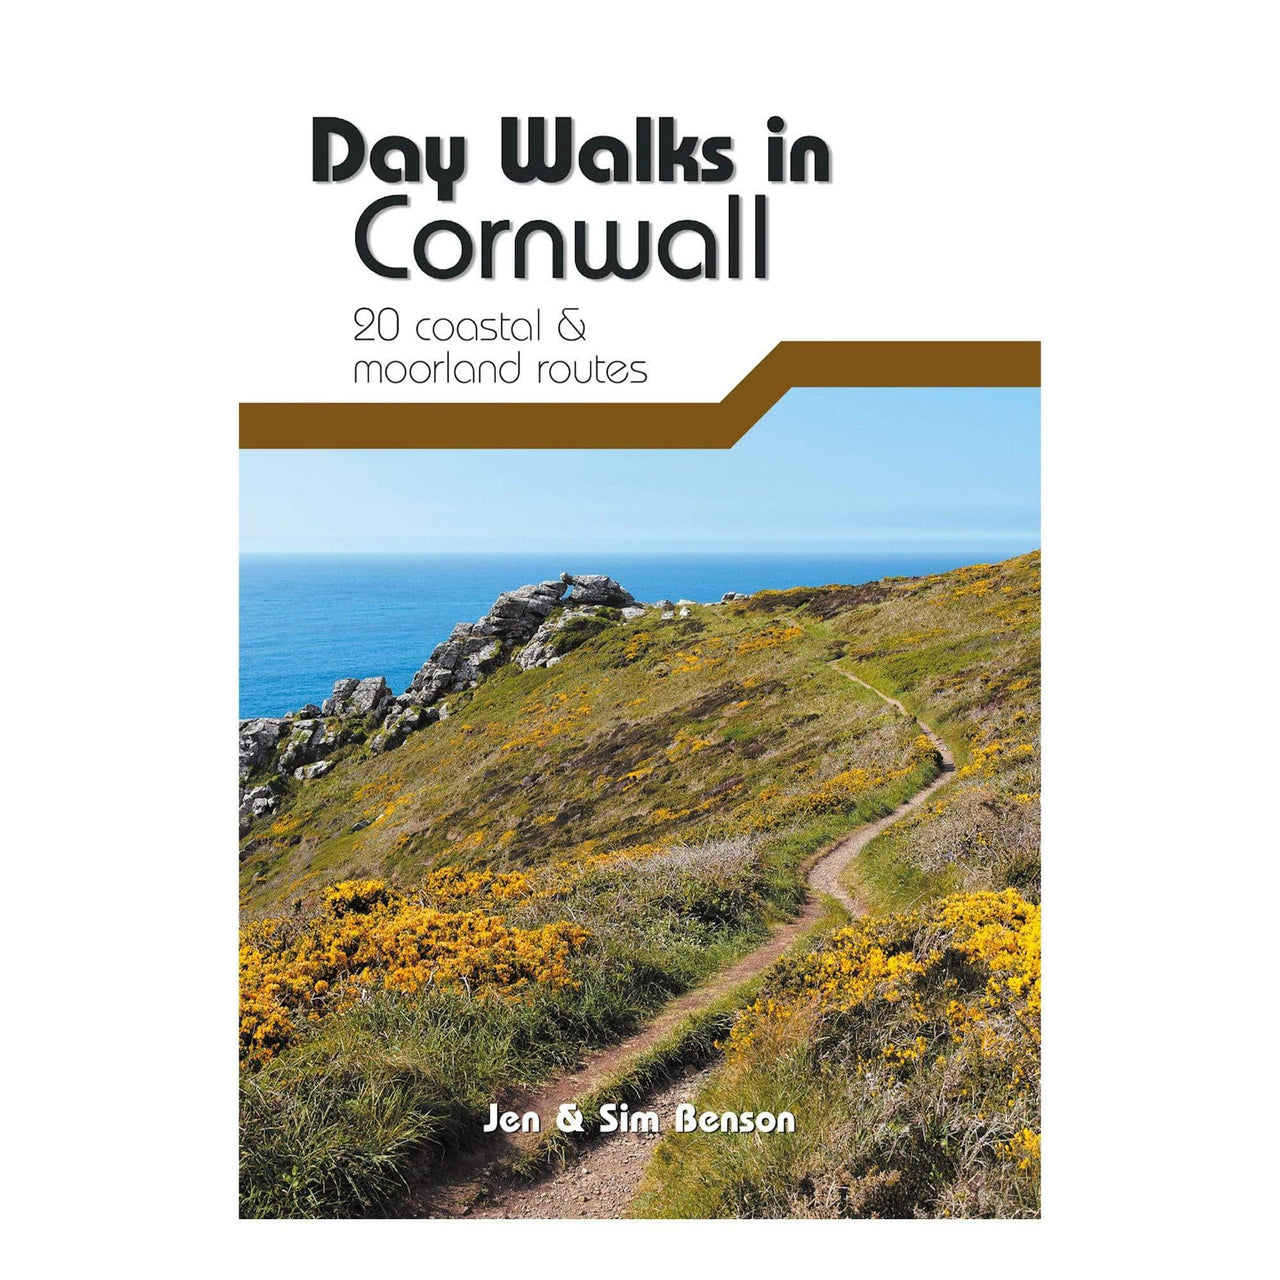 Day Walks in Cornwall